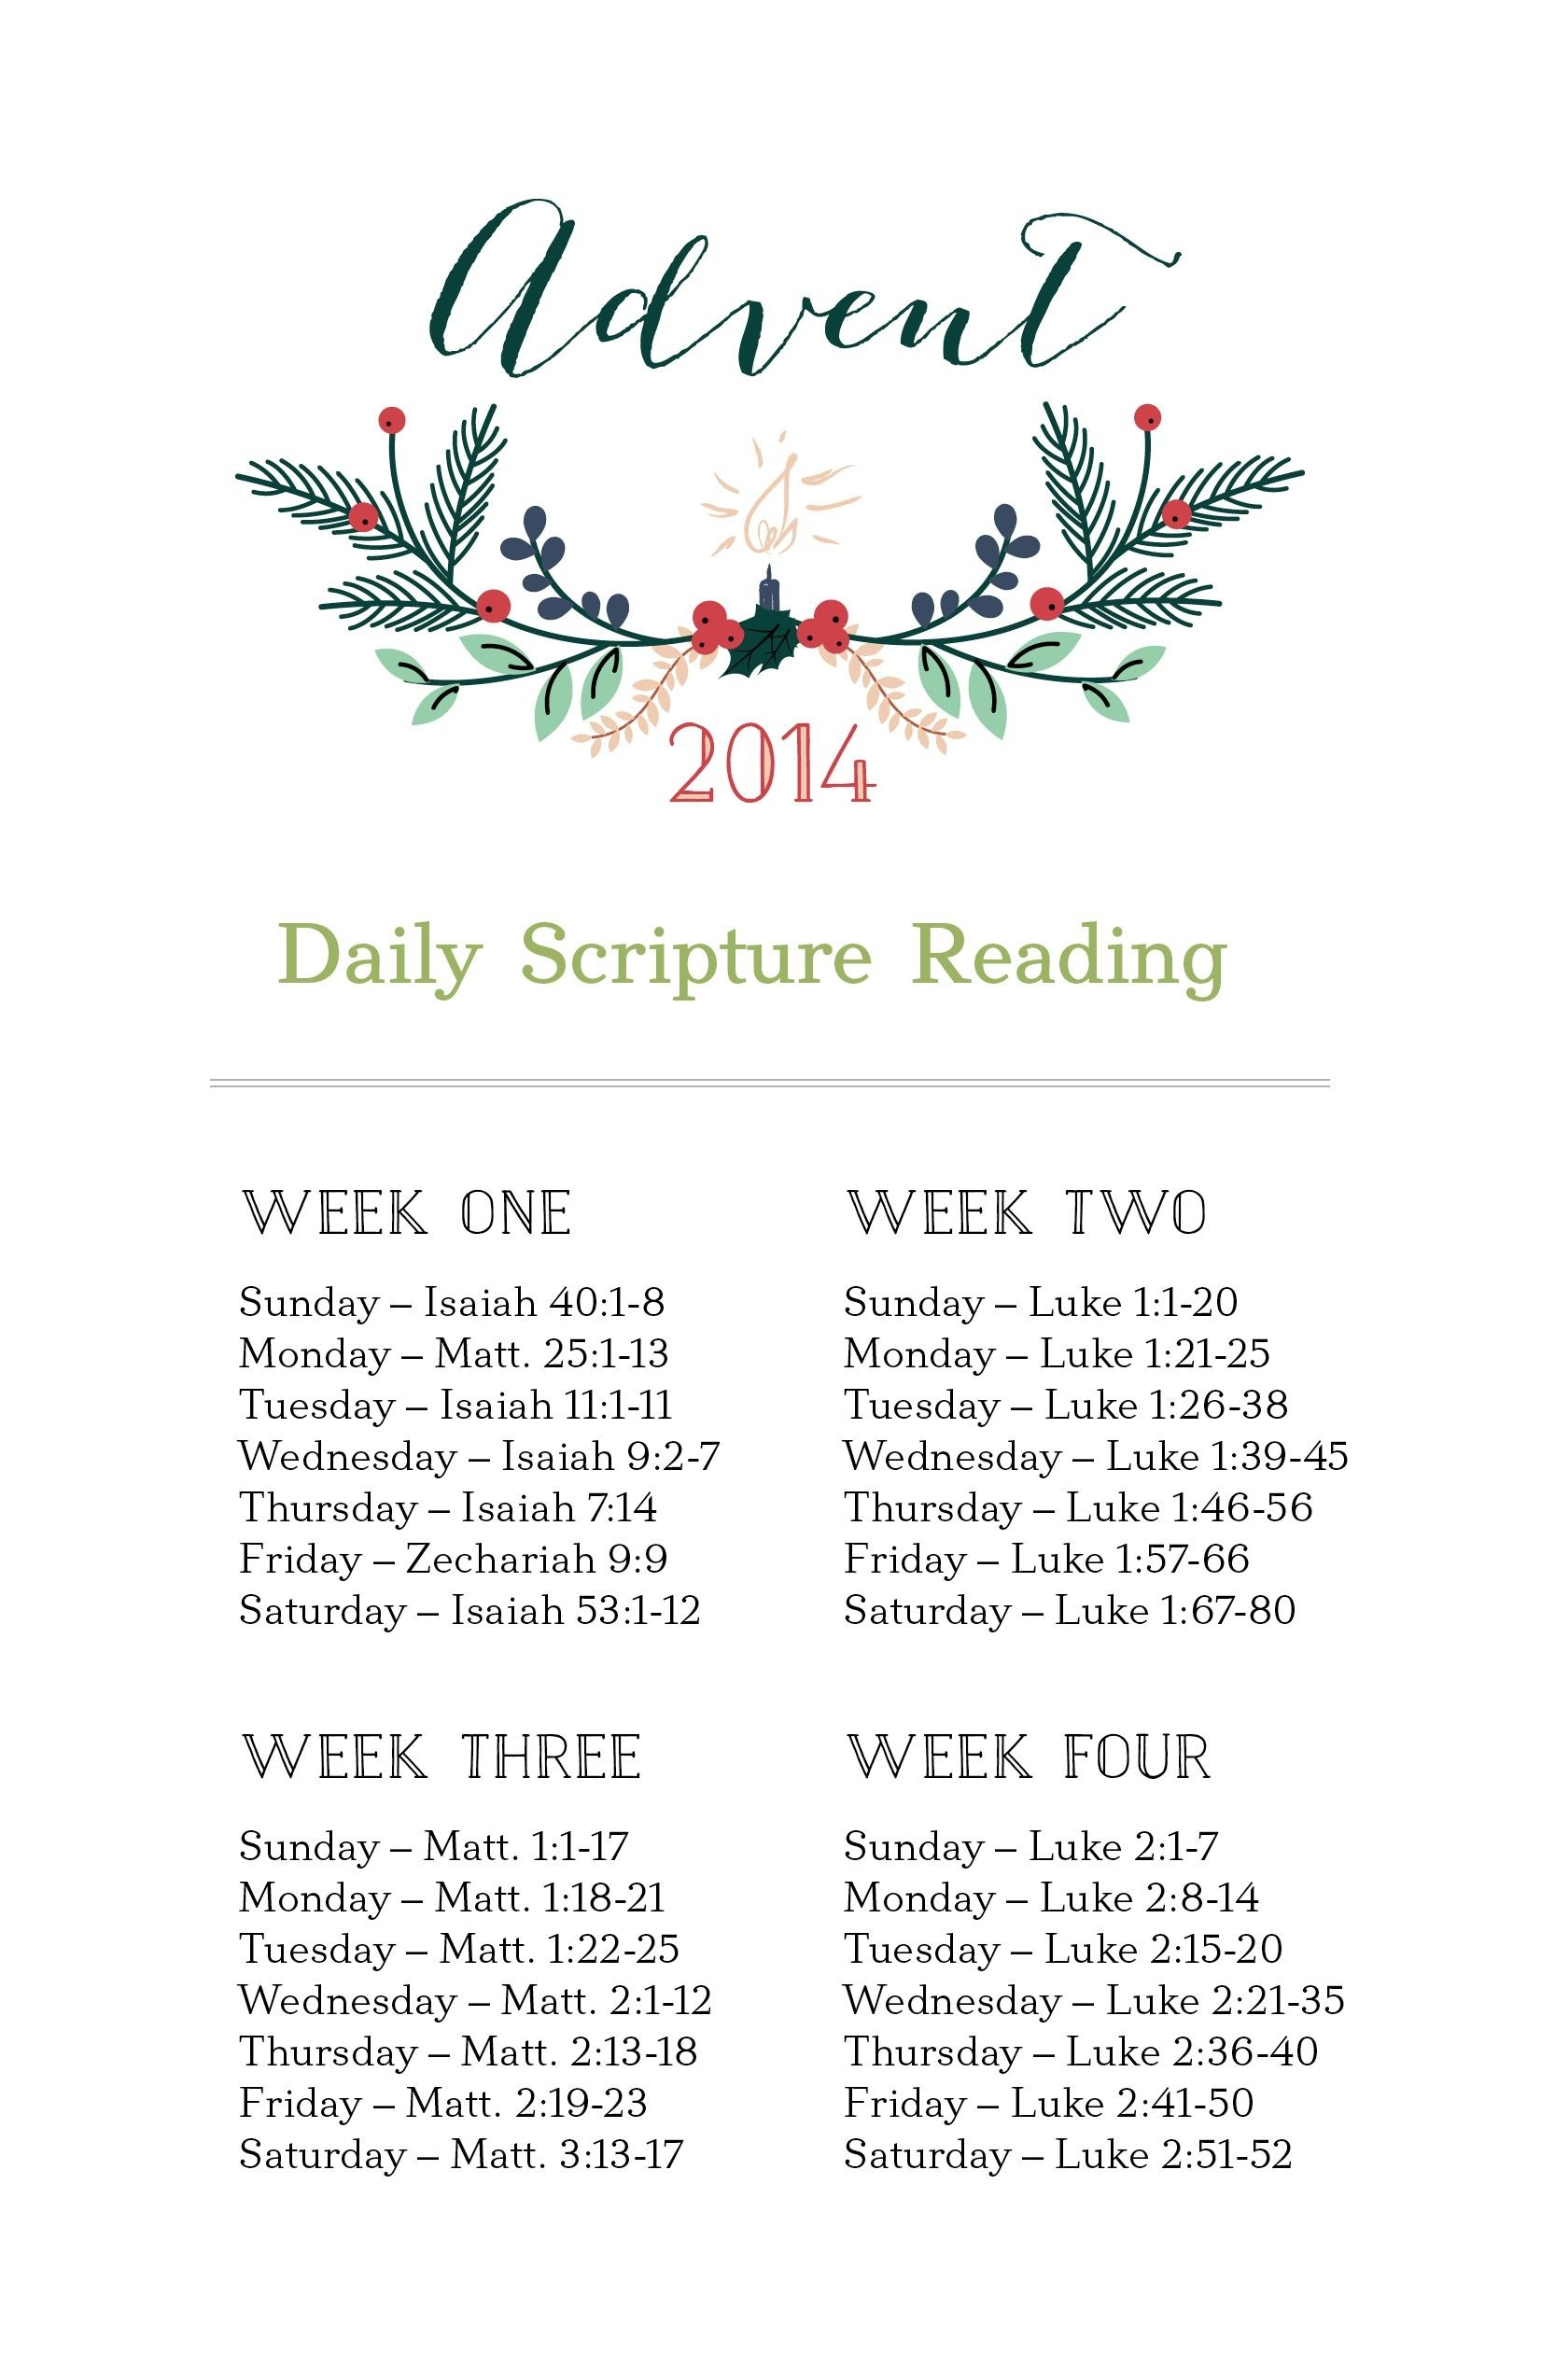 Fellowshipnwa Daily Scripture Readings #Advent | Daily  Advent Scriptures 2021